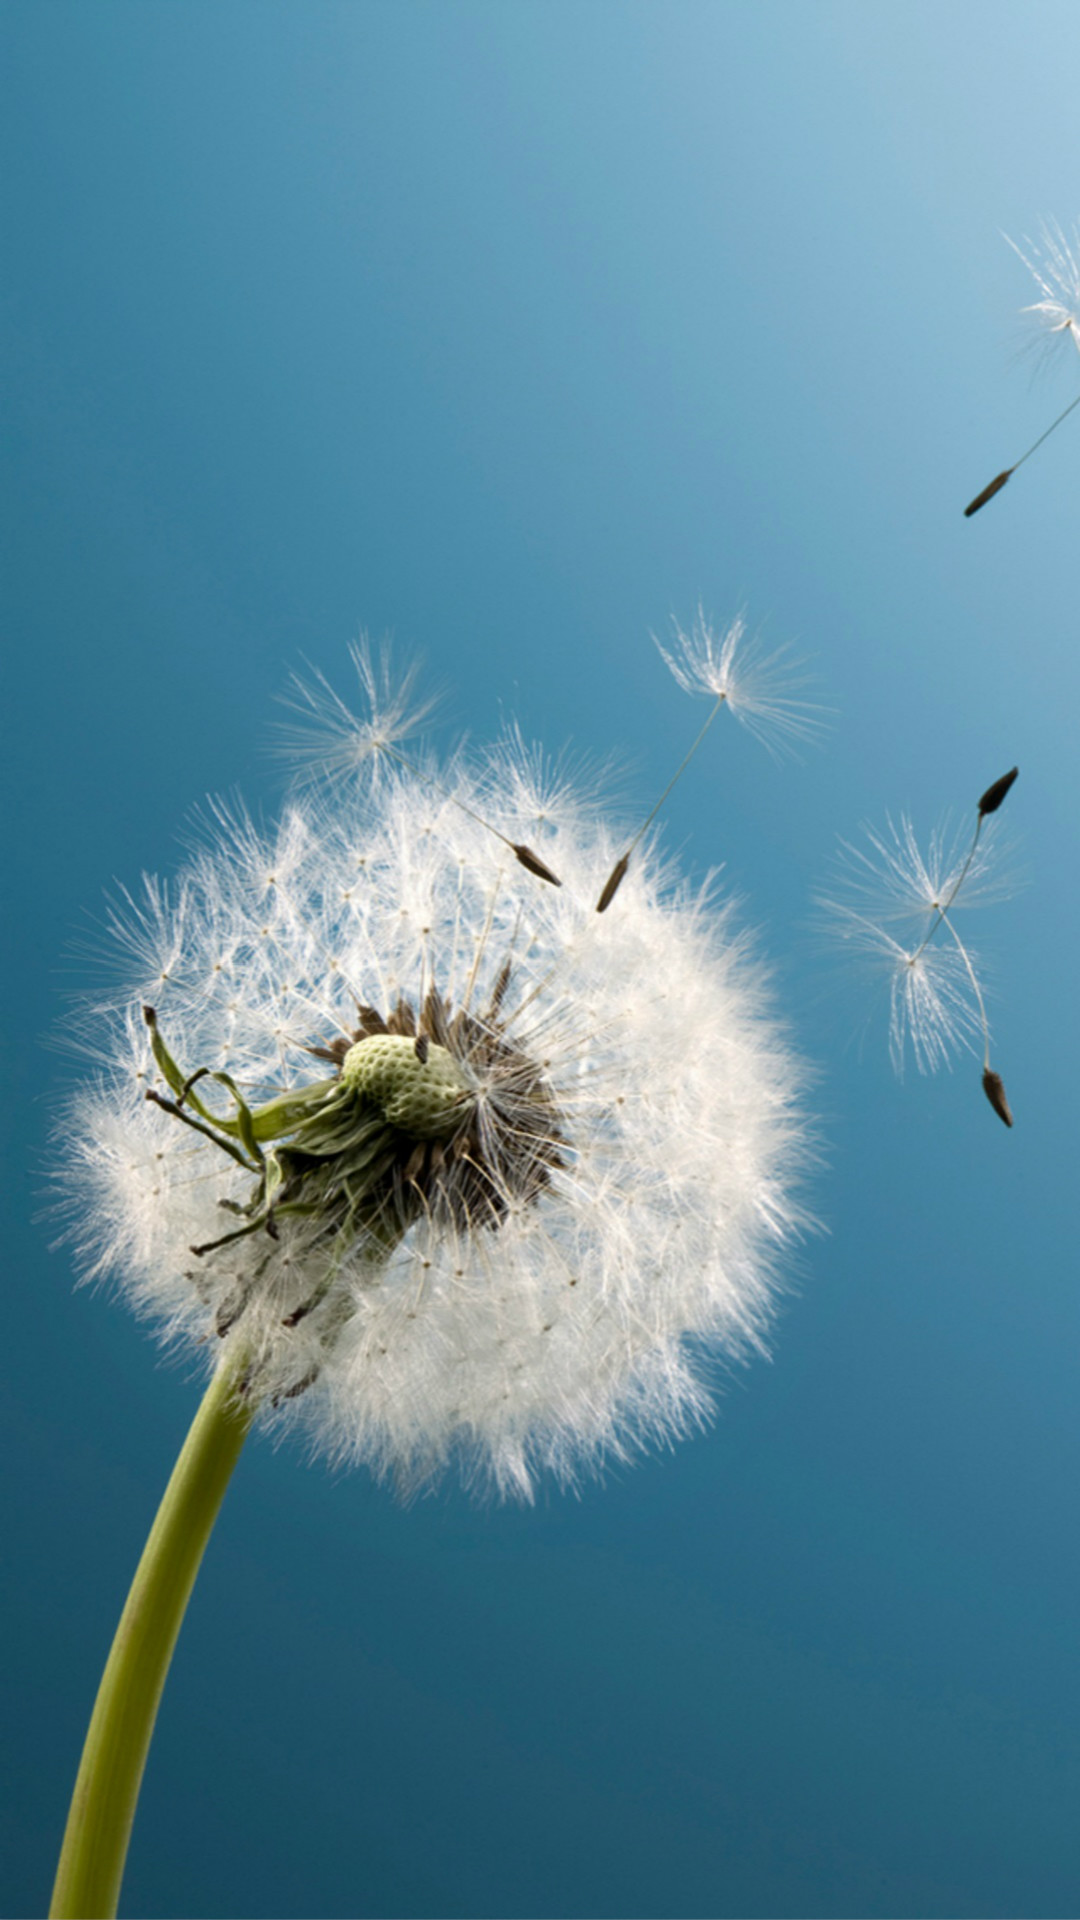 1080x1920 Pure Aesthetic Dandelion Blowing Blue Sky Macro #iPhone #6 #plus #wallpaper